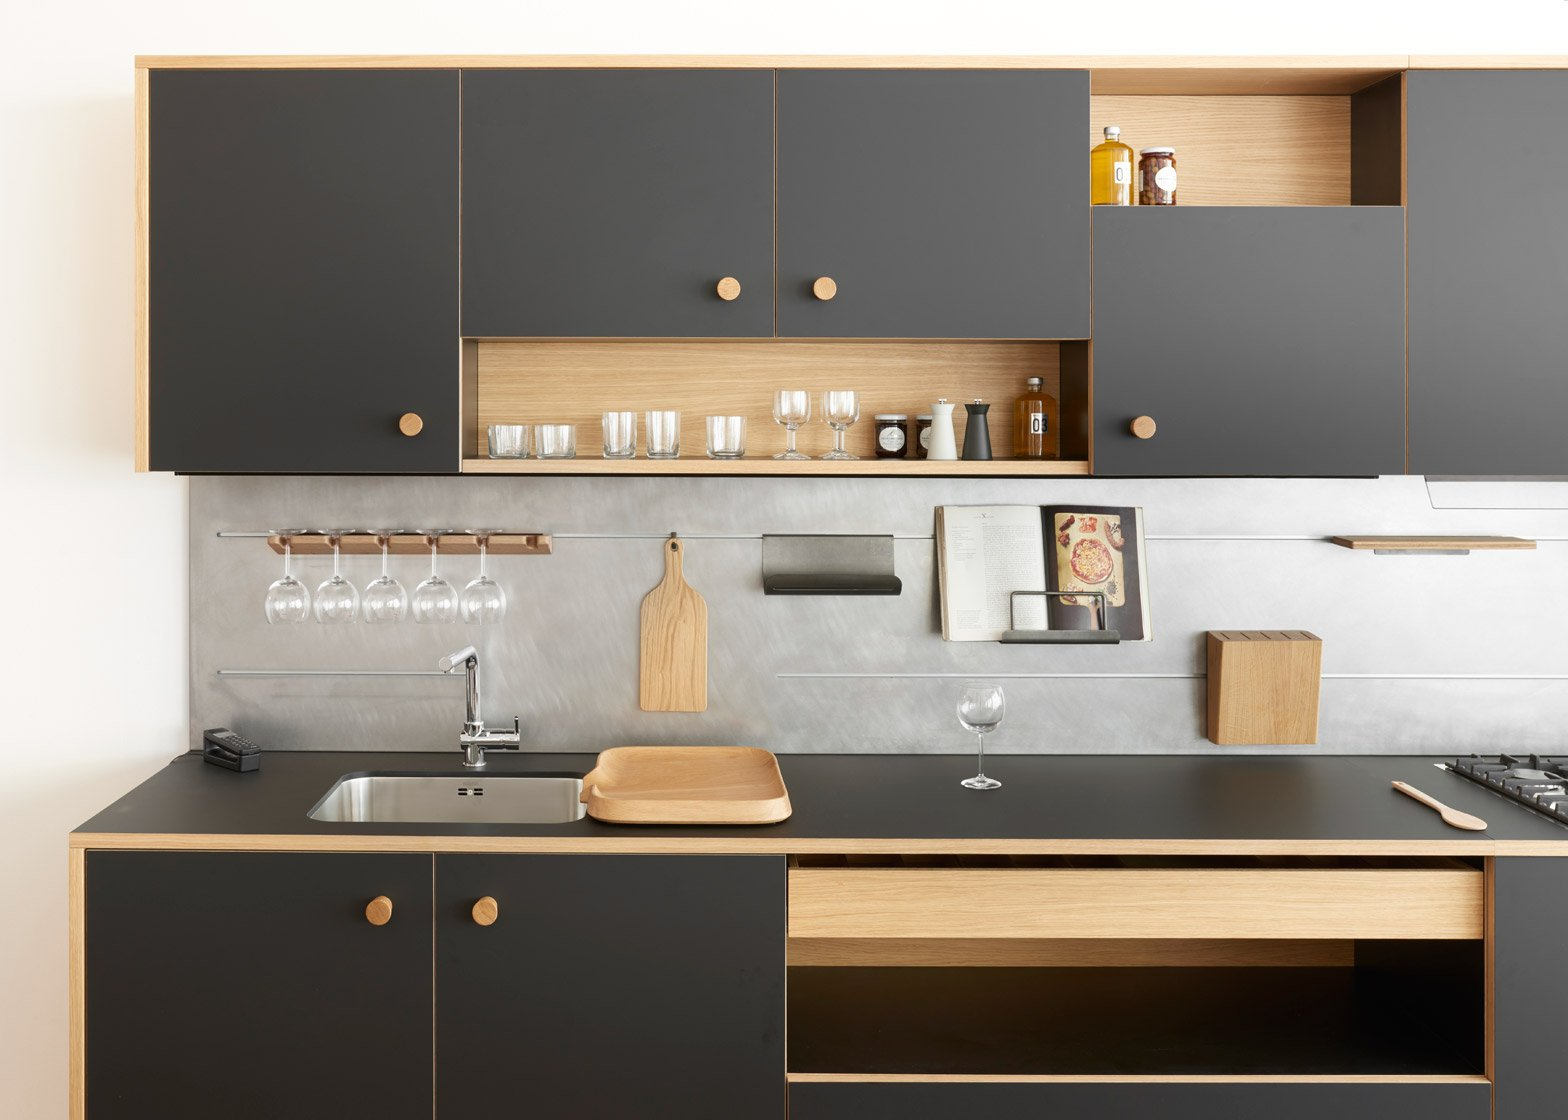 Merveilleux 11 Of 13; Lepic Kitchen By Jasper Morrison